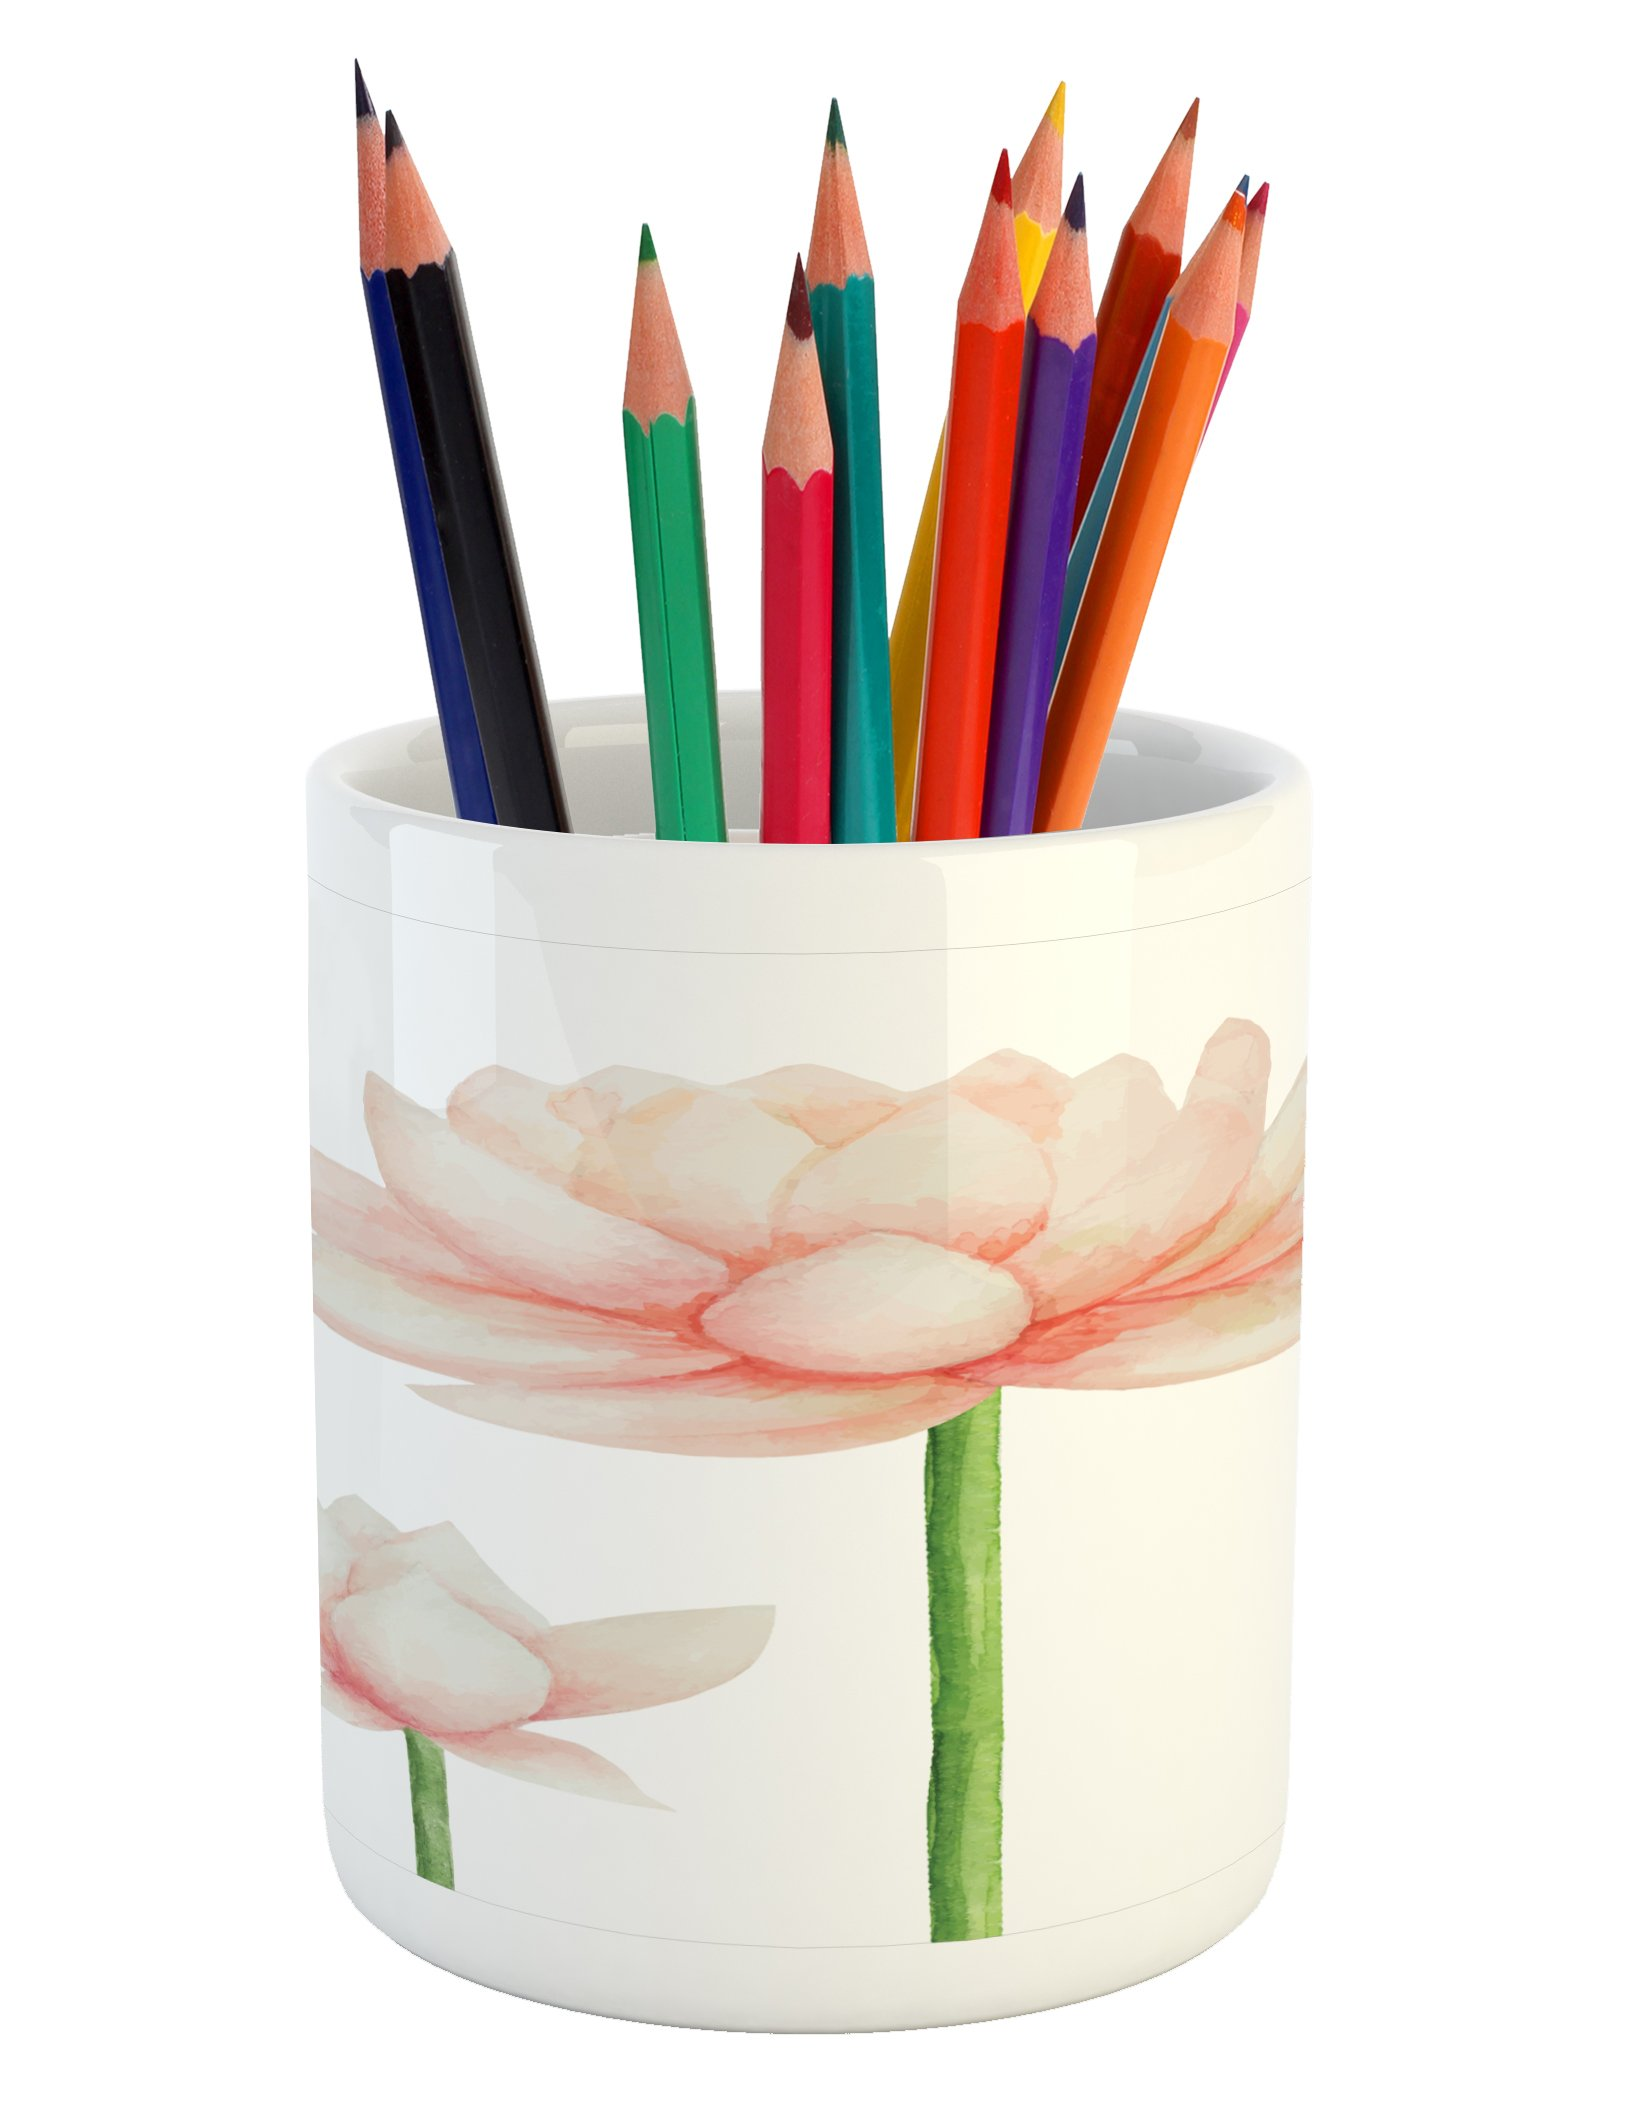 Ambesonne Yoga Pencil Pen Holder, Pastel Colored Blooming Lotus Flower Romantic Fresh Garden Plant Spa Theme, Printed Ceramic Pencil Pen Holder for Desk Office Accessory, Peach Green and White